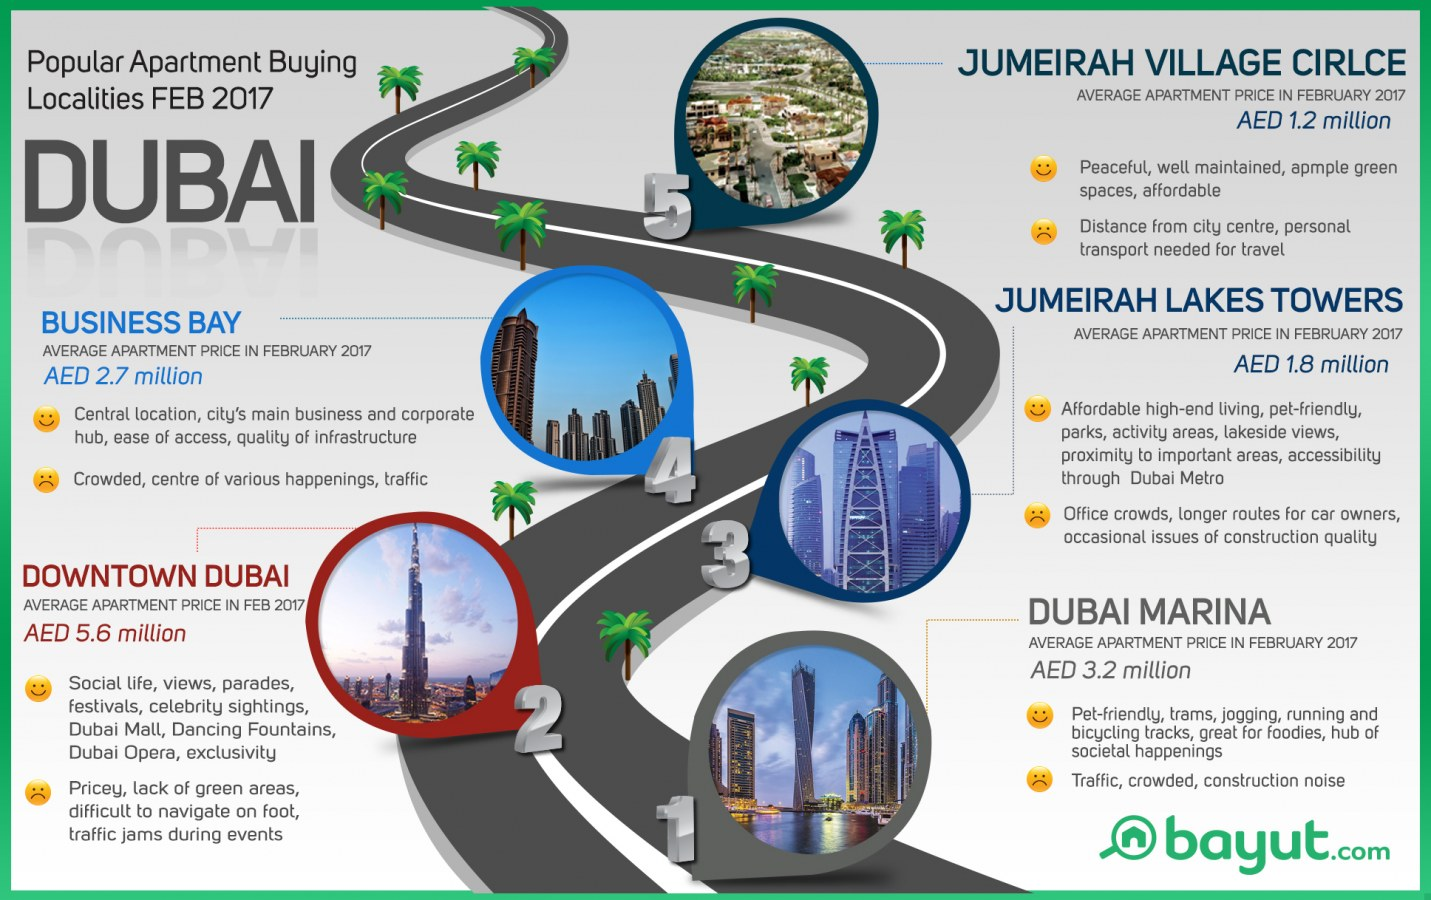 Dubai's top apartment buying areas info-graphic by Bayut.com